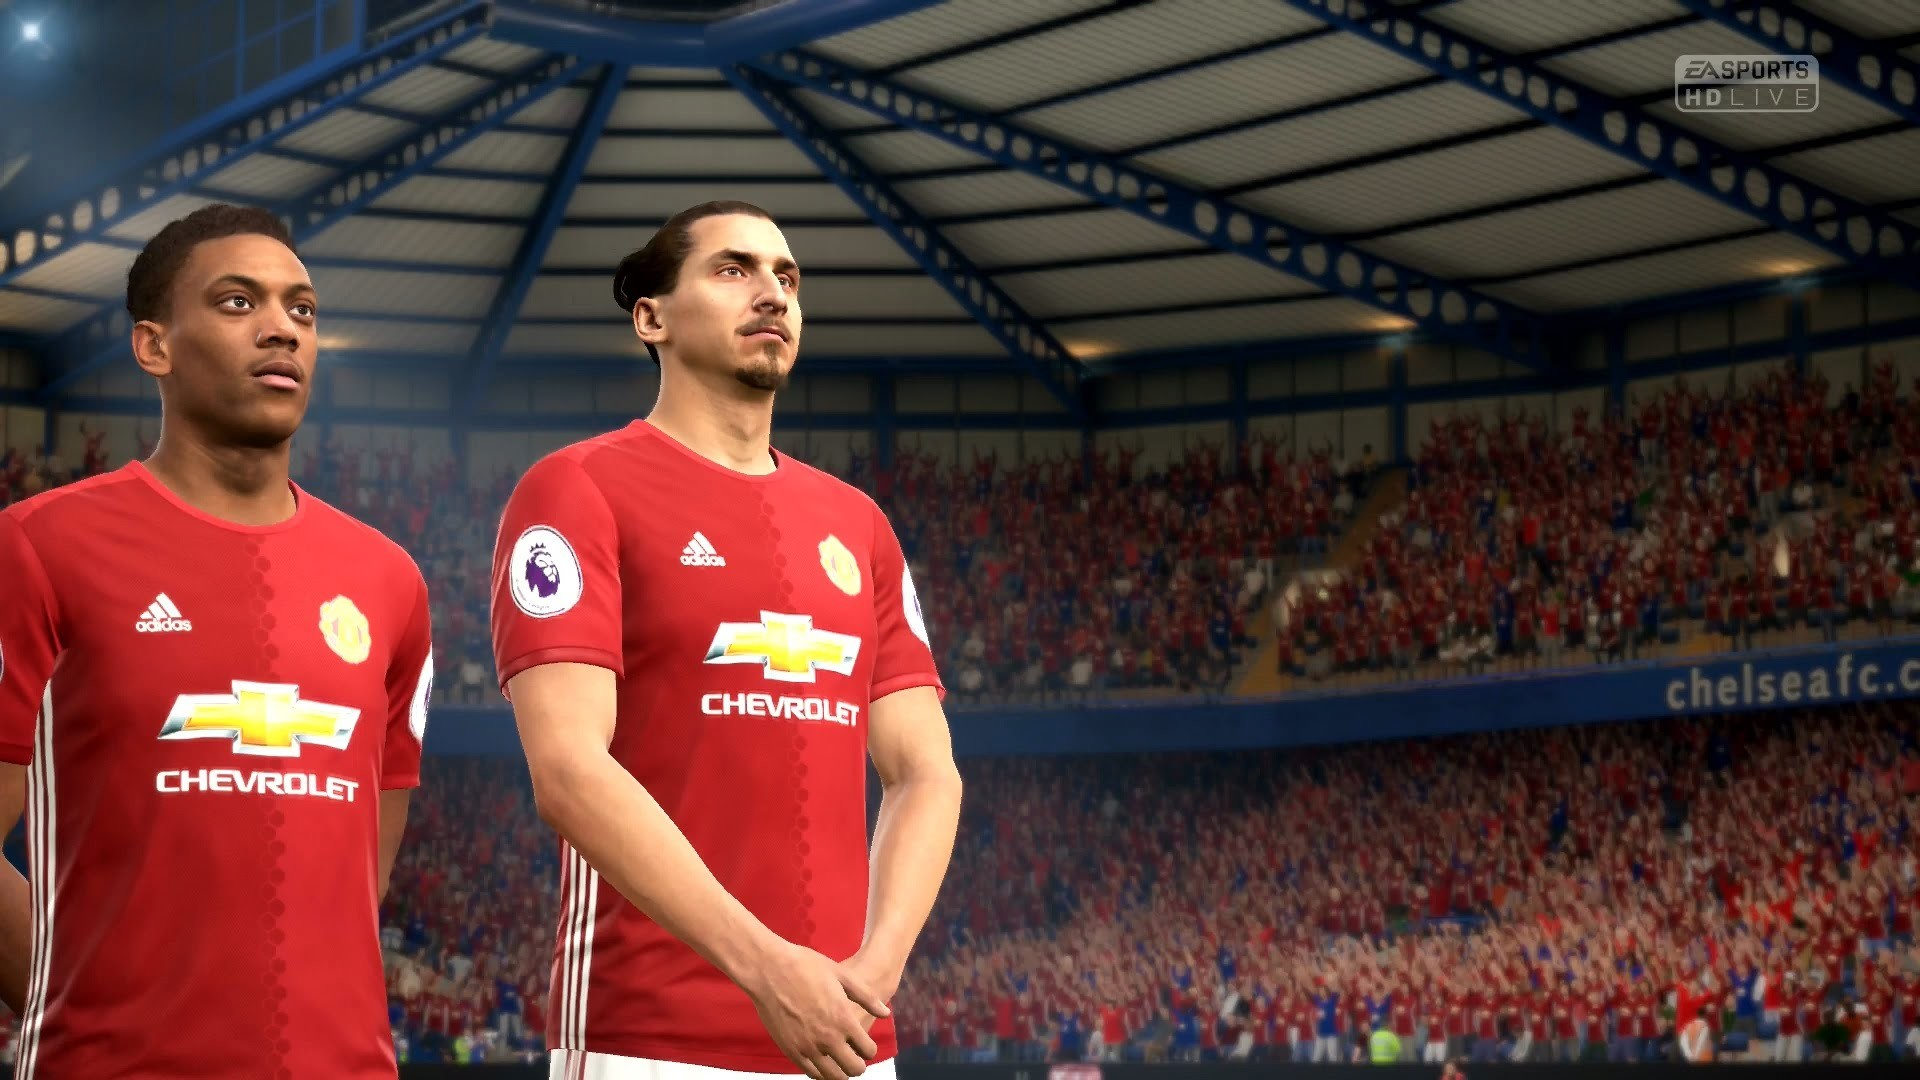 Manchester united hd wallpaper 2018 73 images 1920x1080 the emirates fa cup final chelsea vs manchester united fifa 17 youtube voltagebd Image collections